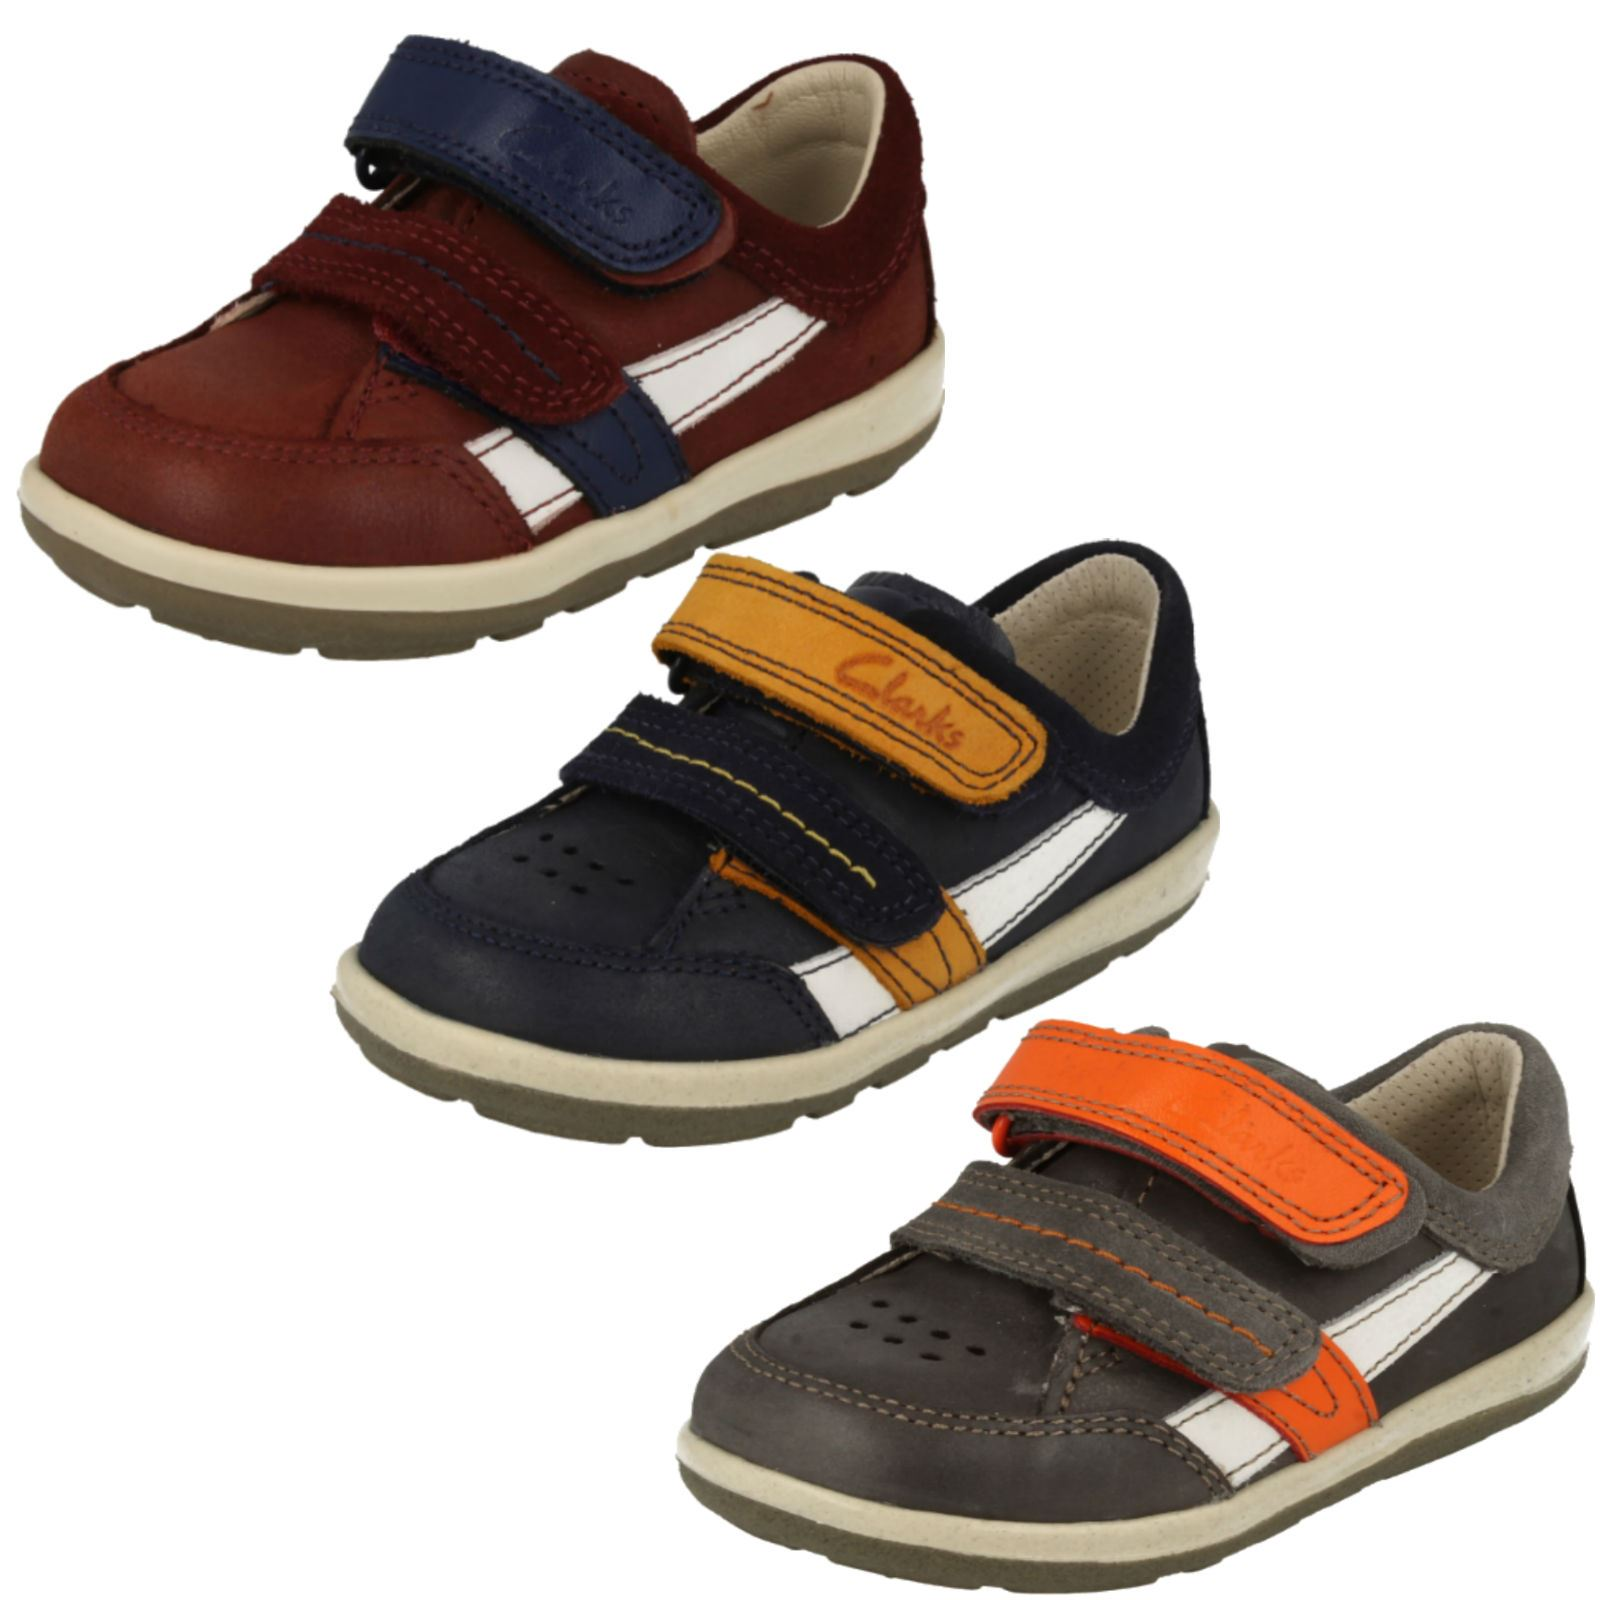 Boys Clarks Softly Zakk Fst Leather First Shoes F /& G Fittings